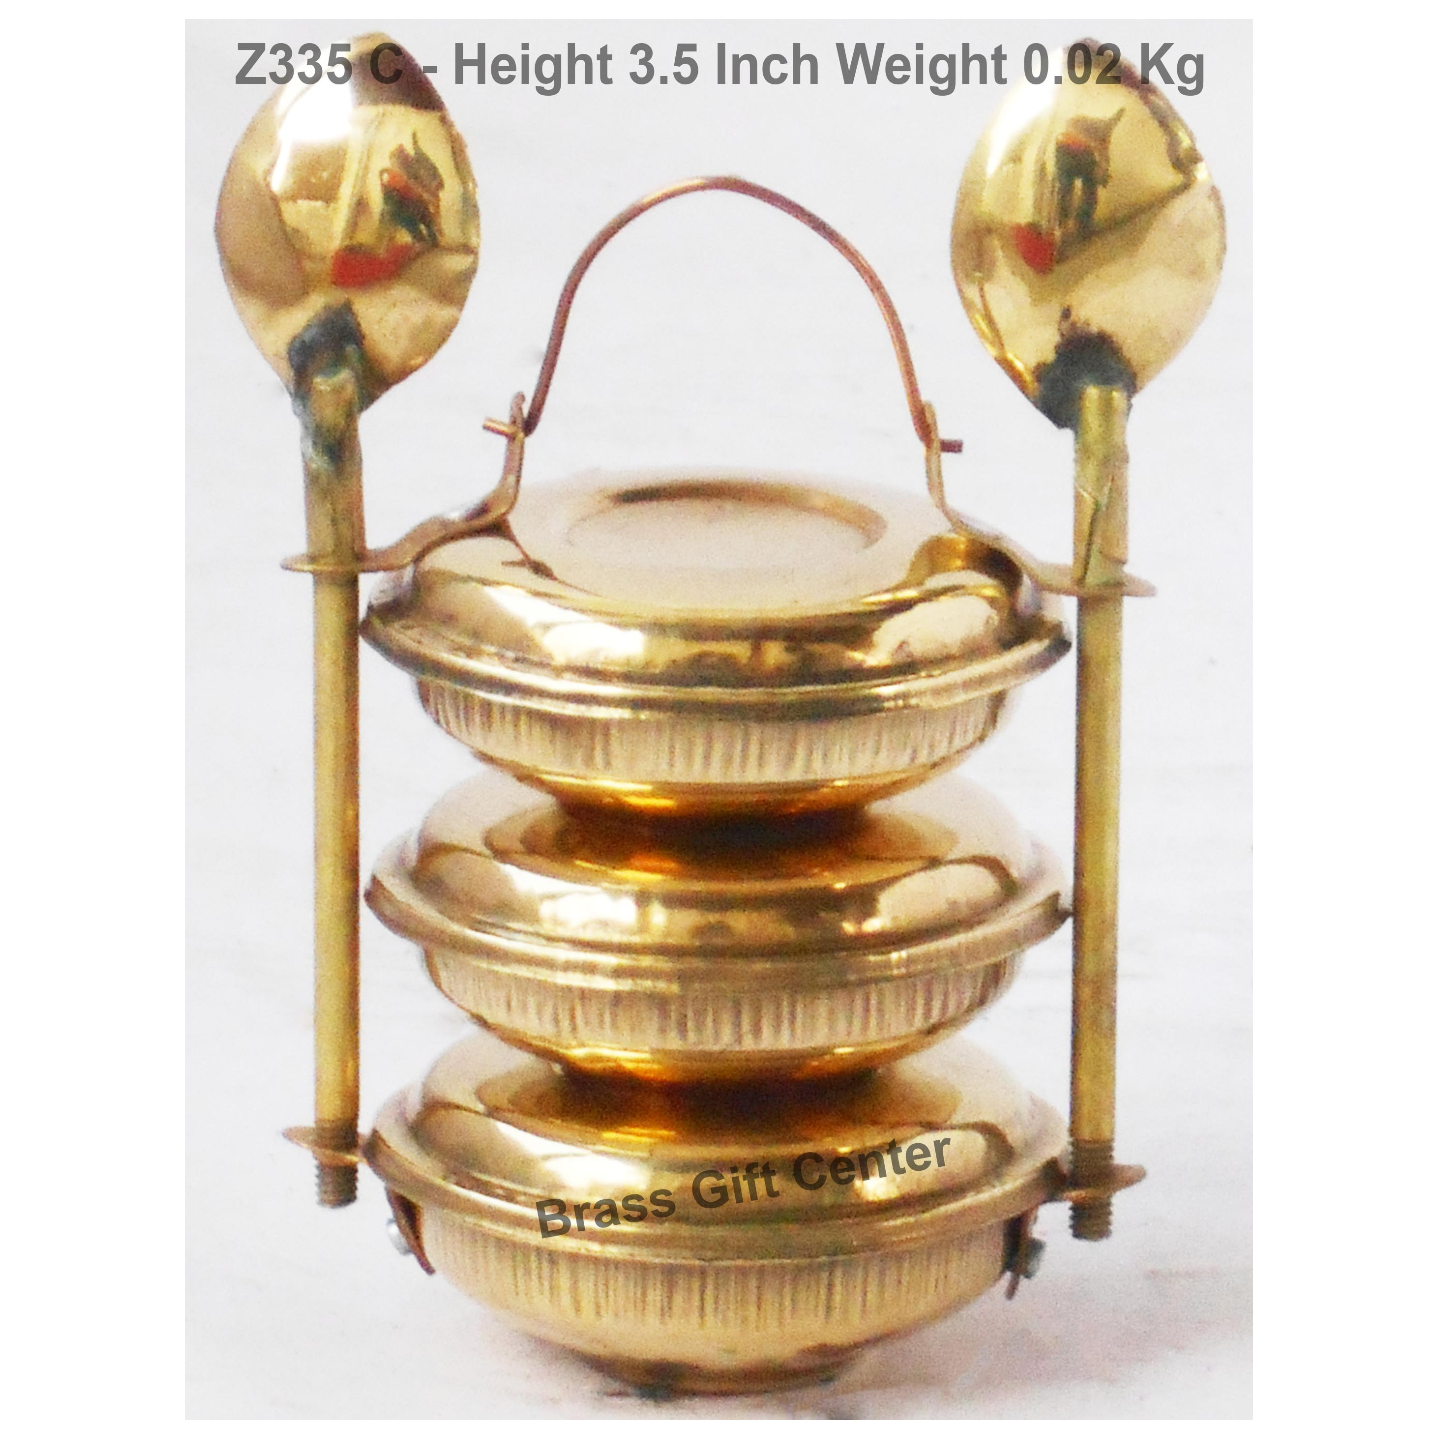 Brass Lunch Box Small Miniature Toy For Children Playing - 2*2*3.5 Inch (Z335 C)